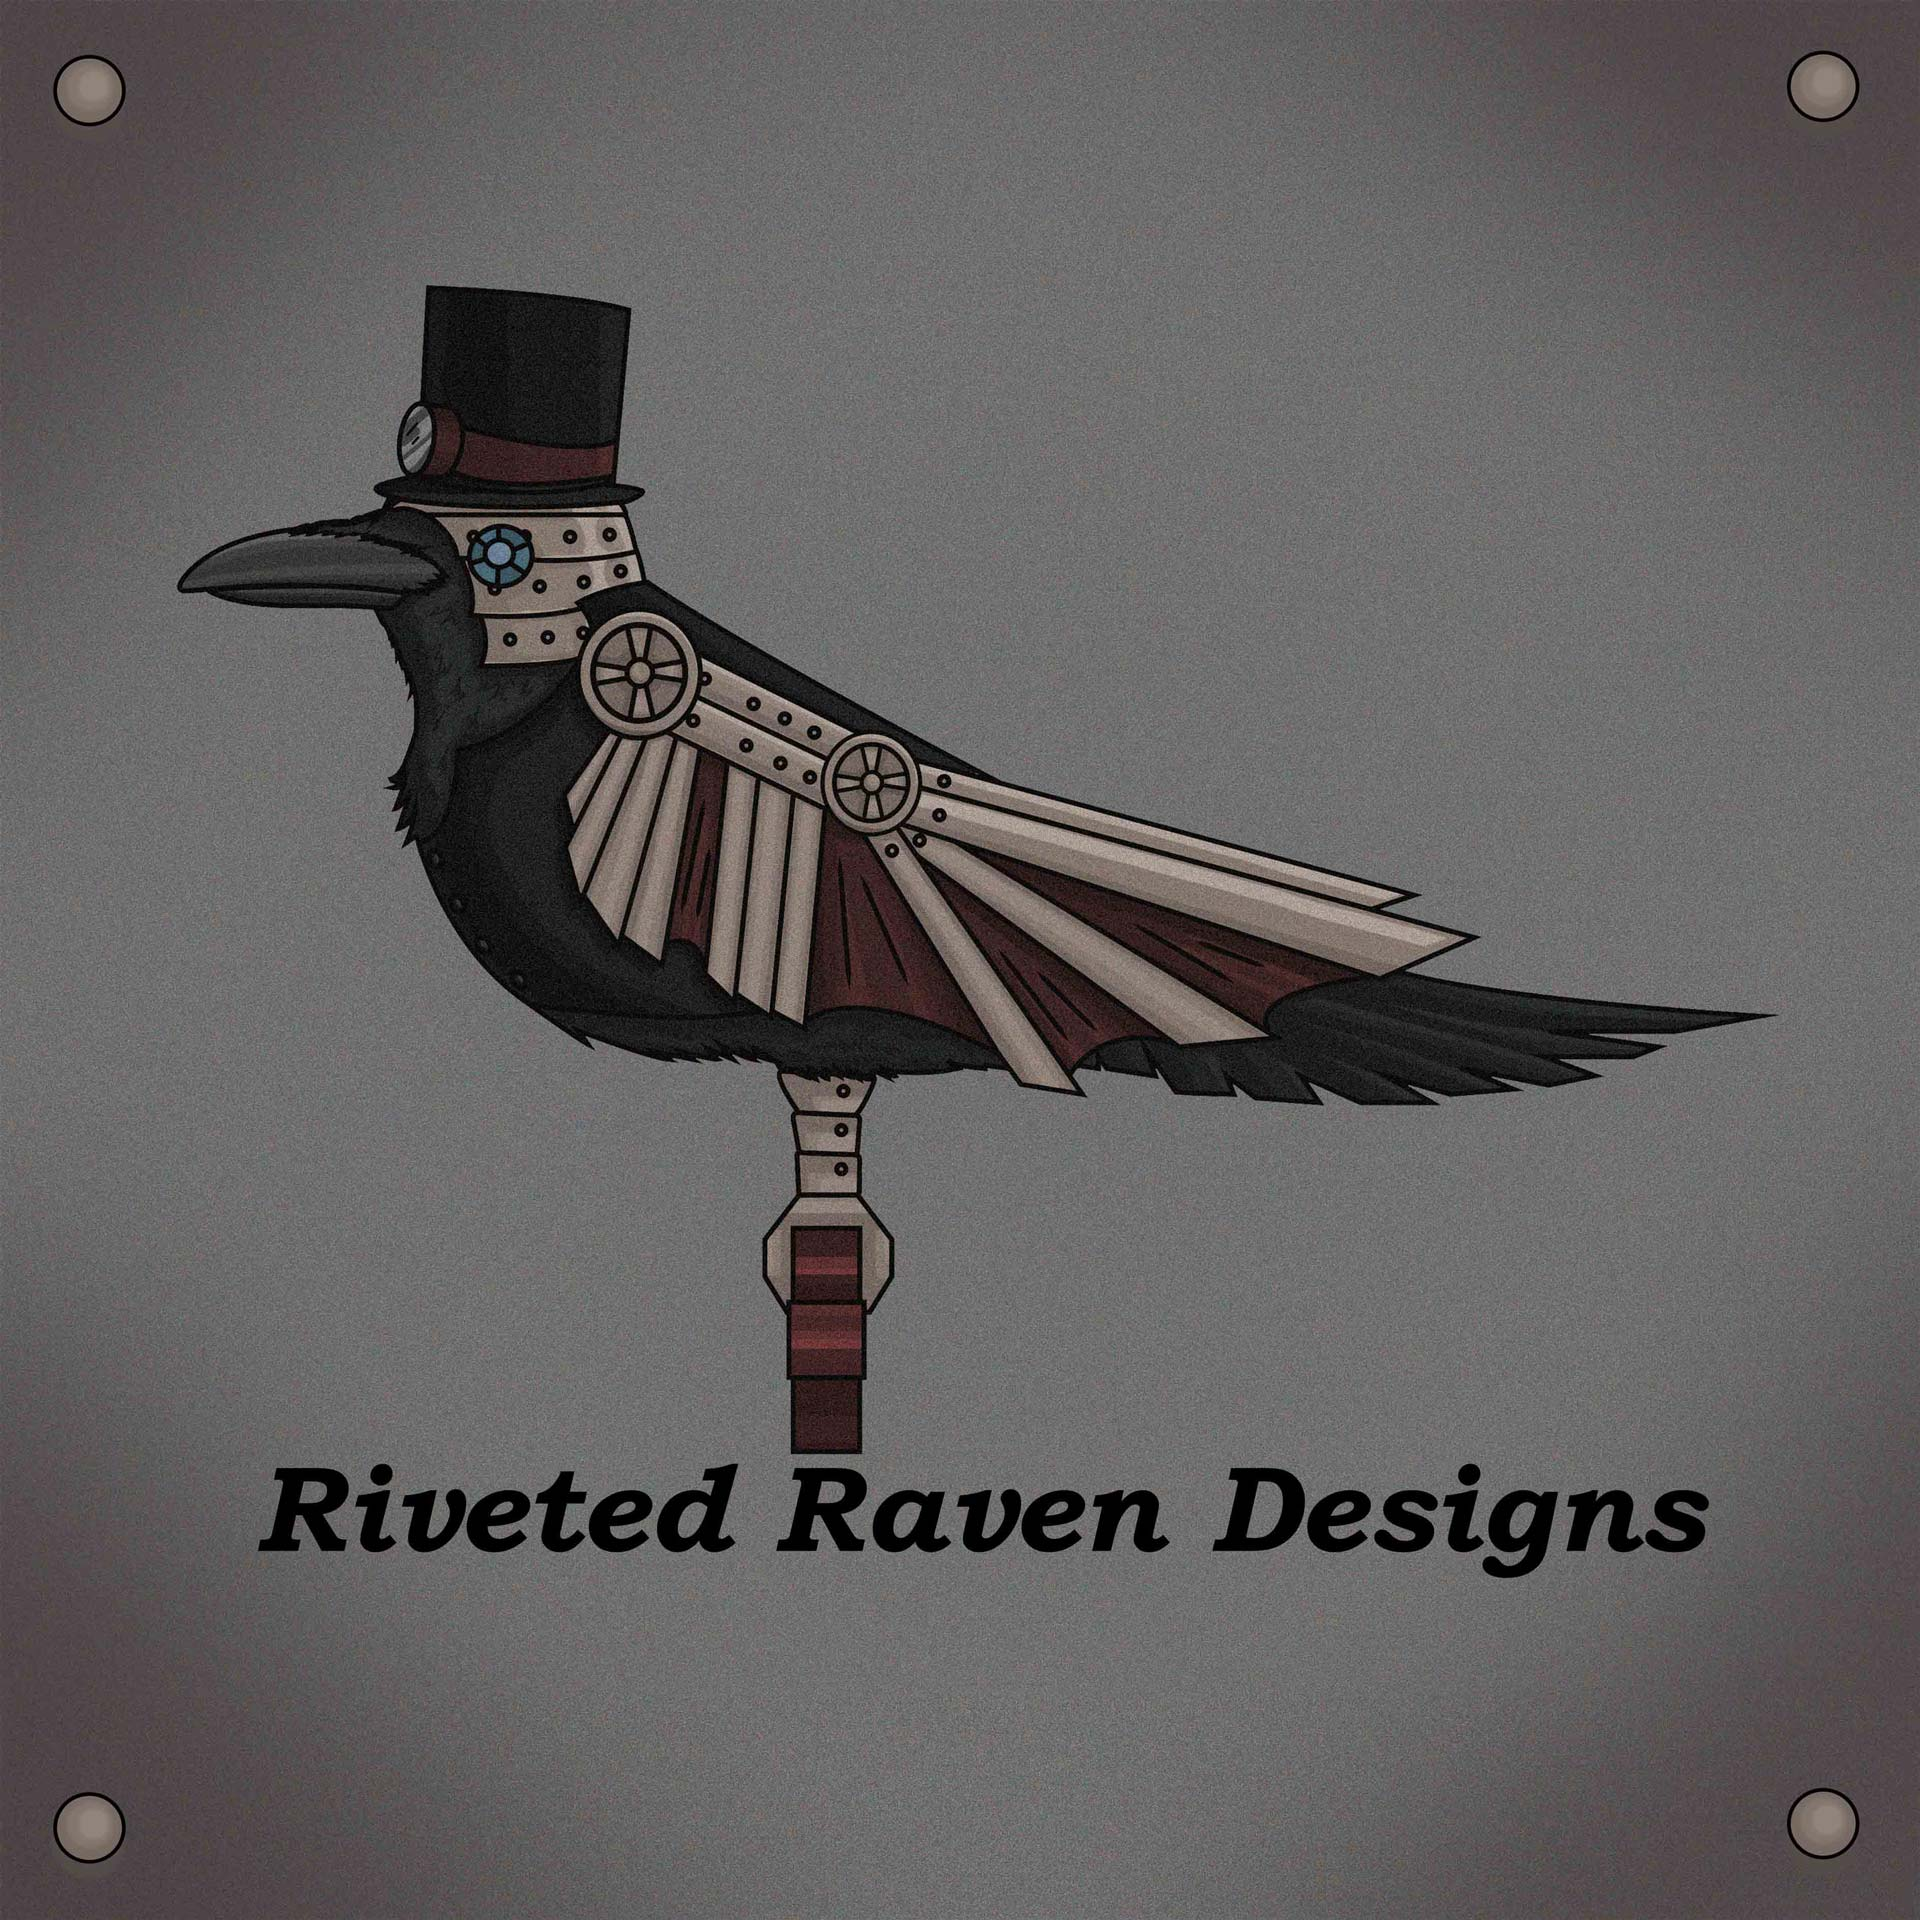 Riveted Raven logo by Yana Brewster